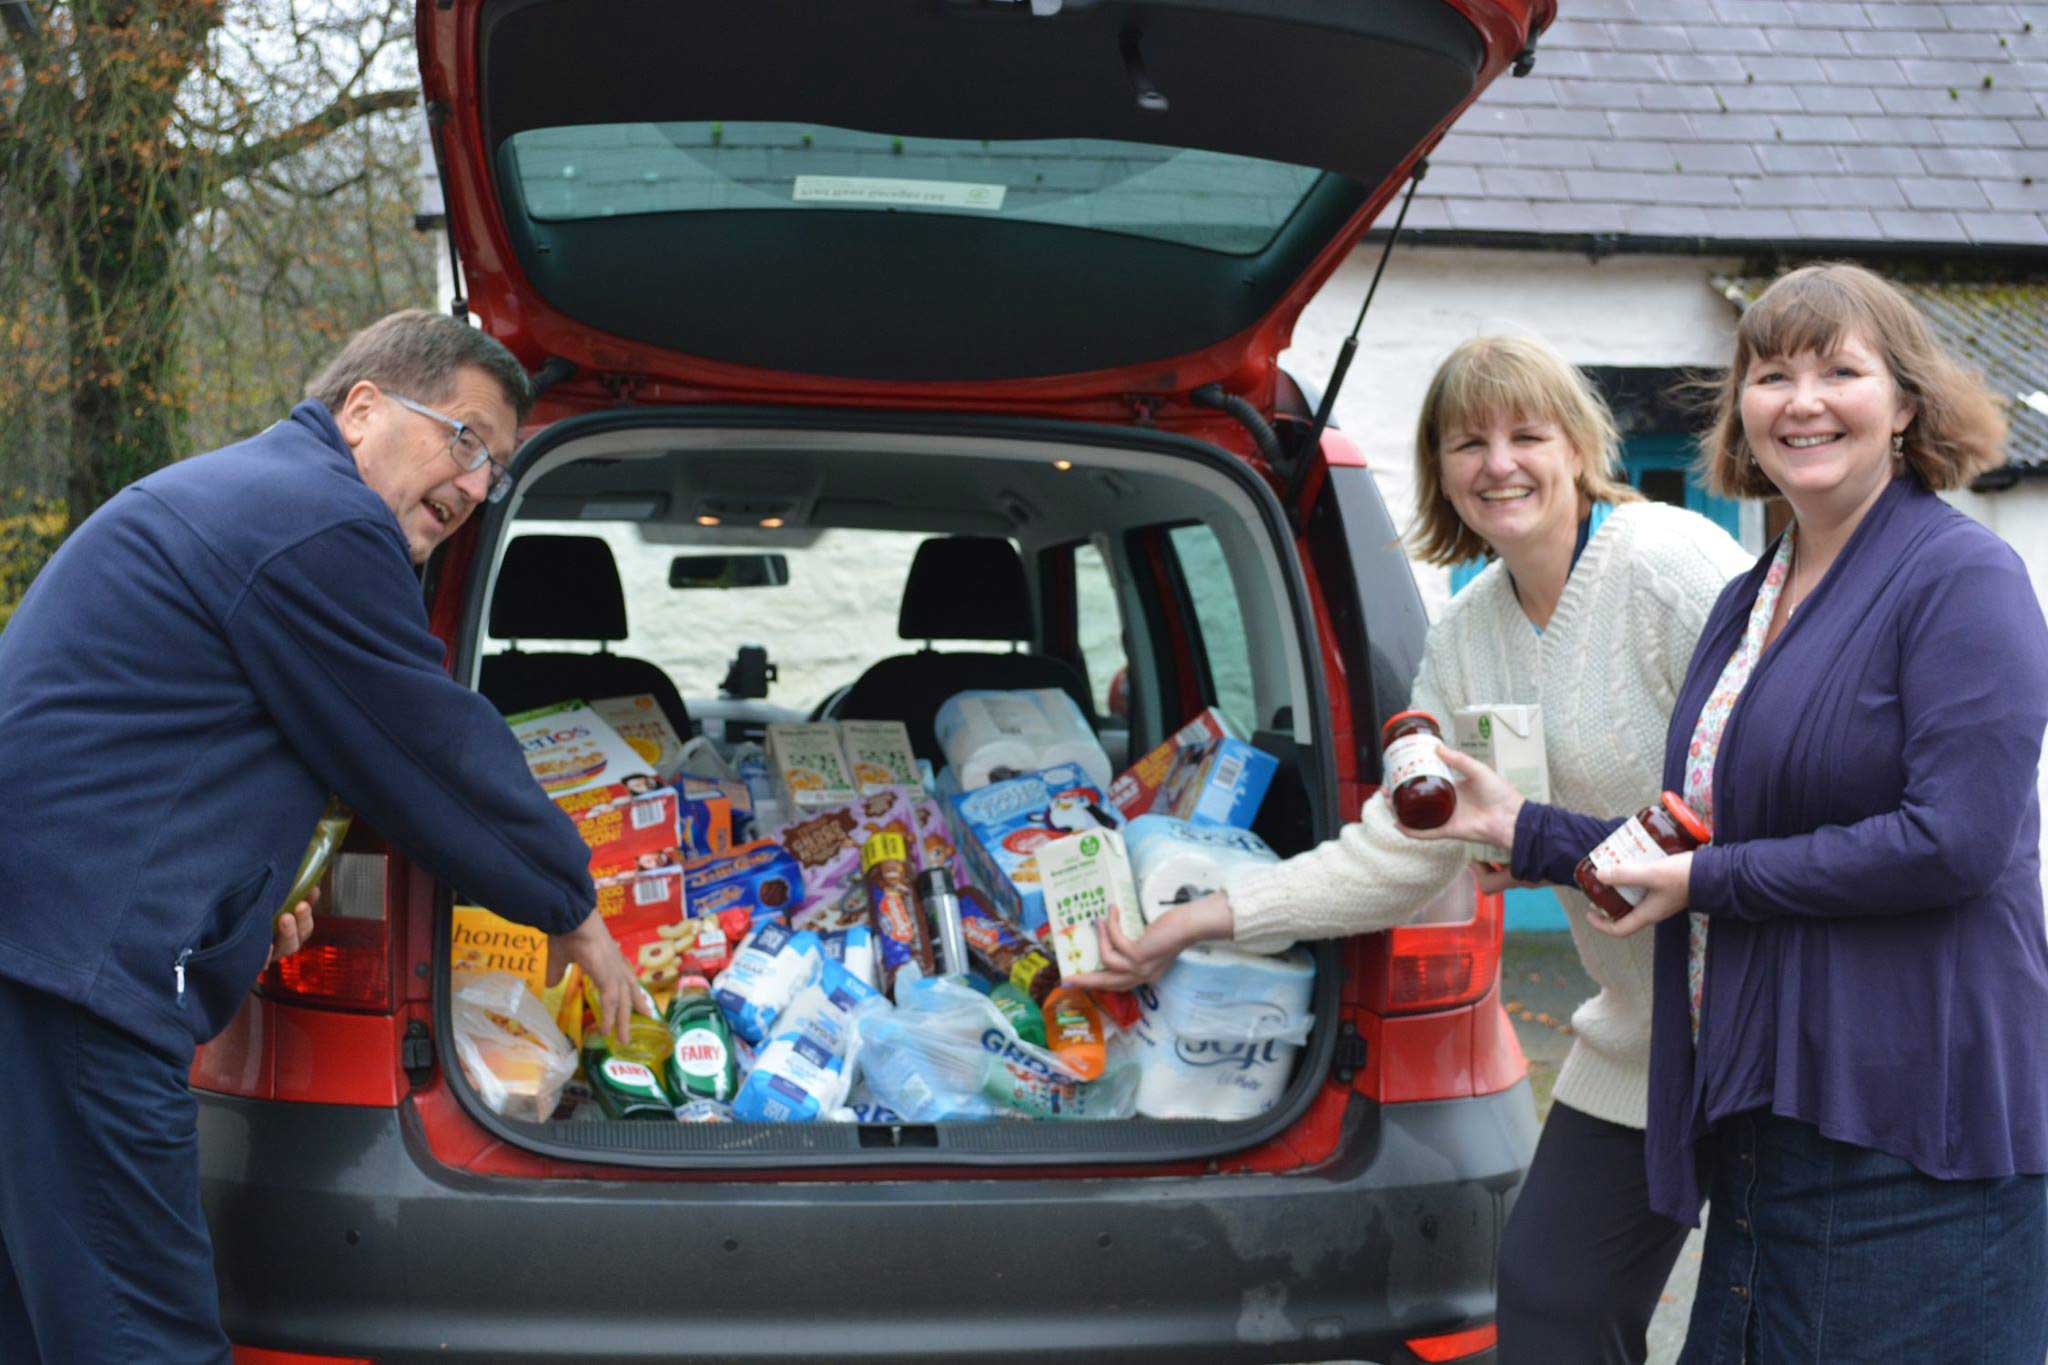 Staff and Senior Partmer of West Wales Holiday Cottages loading items for Cardigan Foodbank into the boot of a car